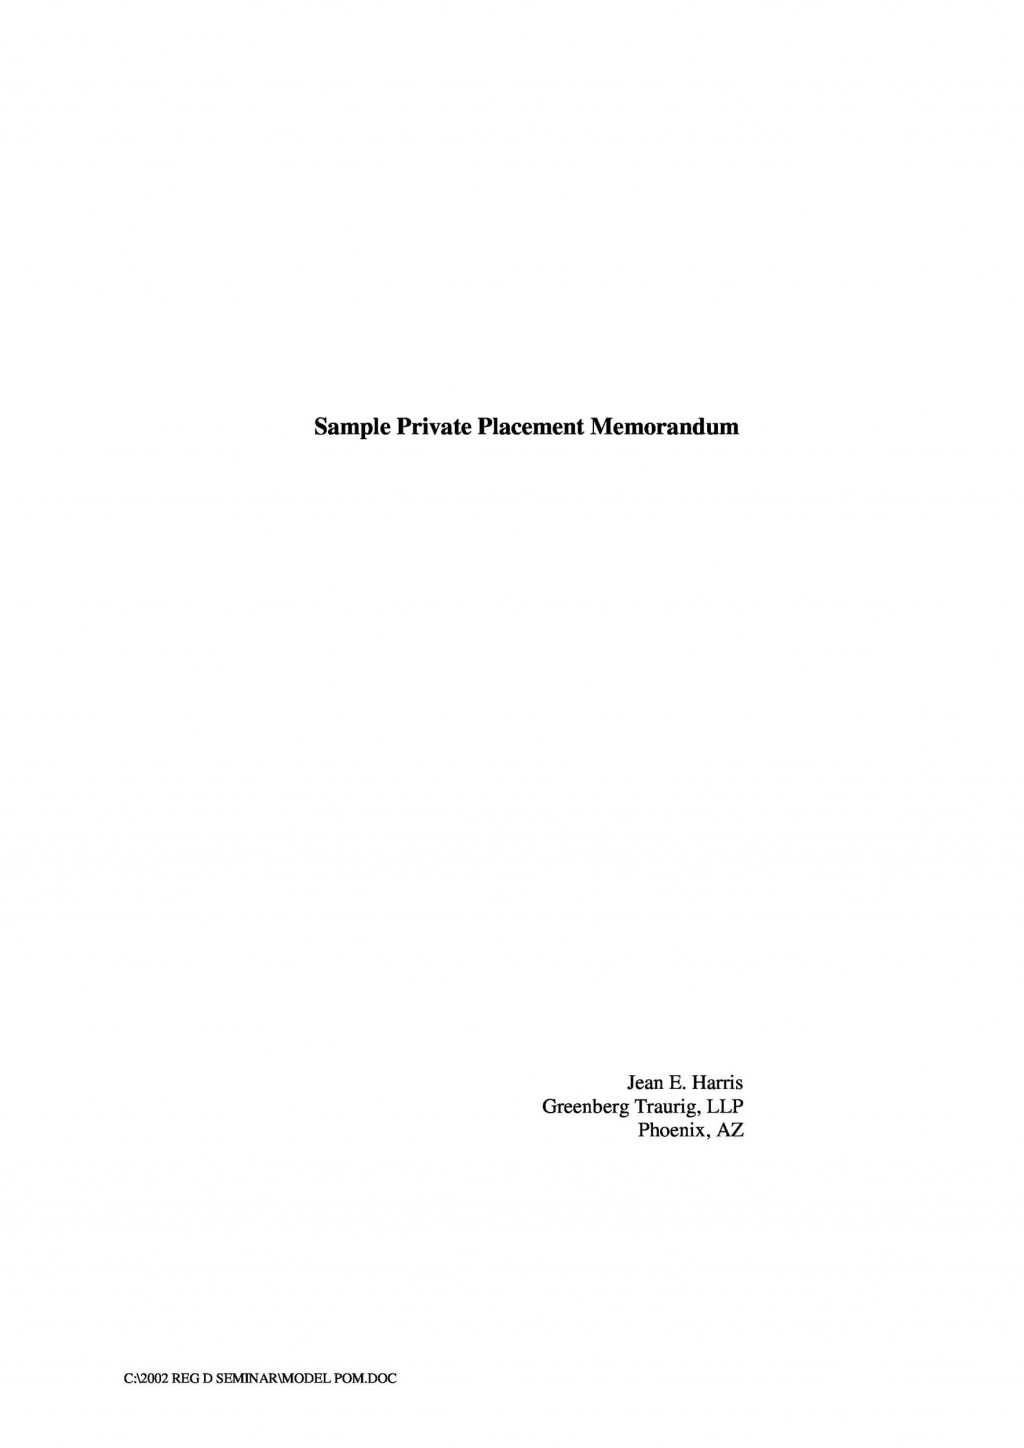 000 Stunning Private Placement Memorandum Template Word Highest Clarity Large